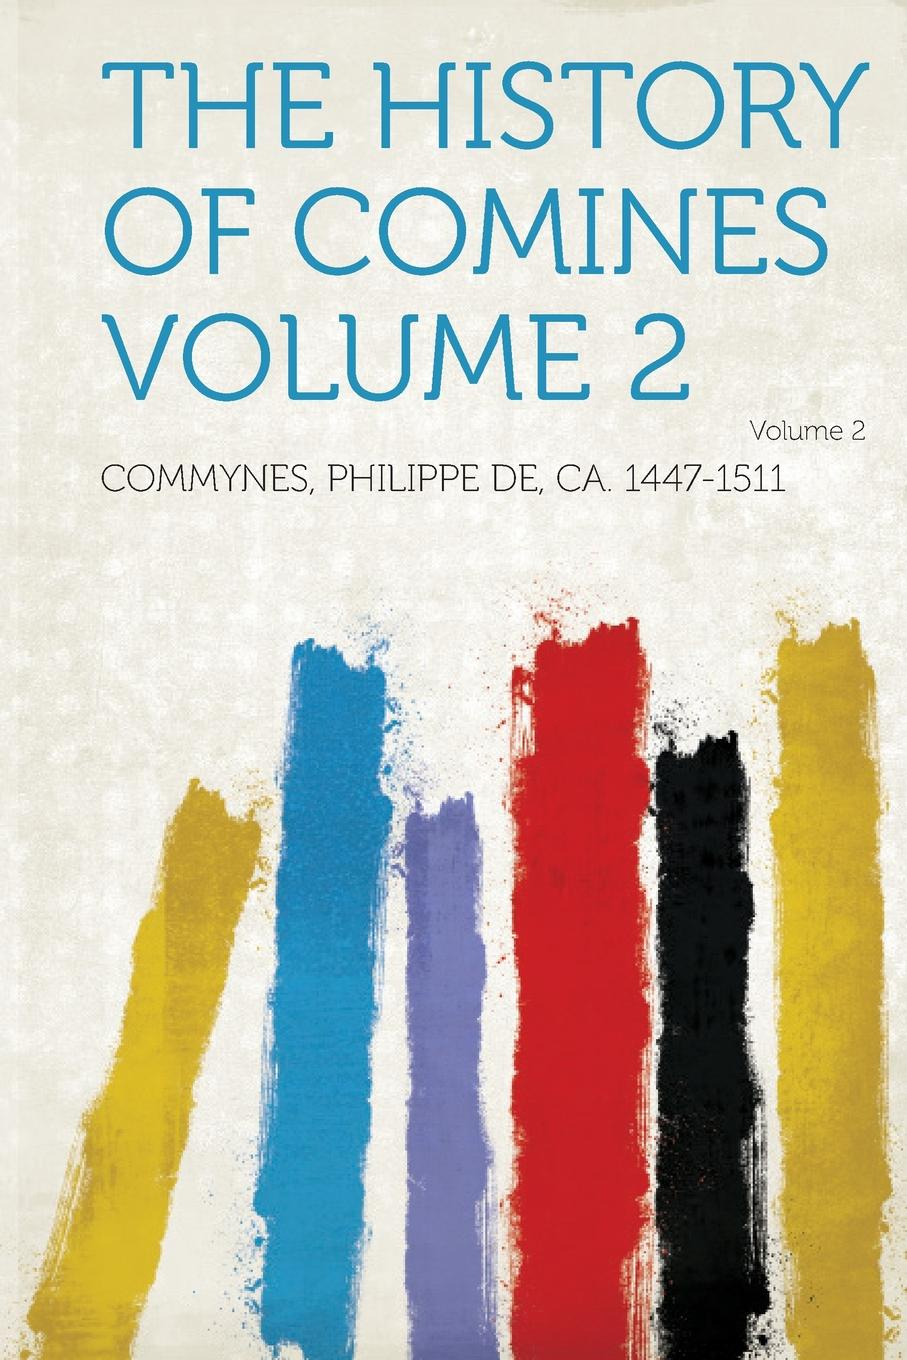 Commynes Philippe De CA. 1447-1511 The History of Comines Volume 2